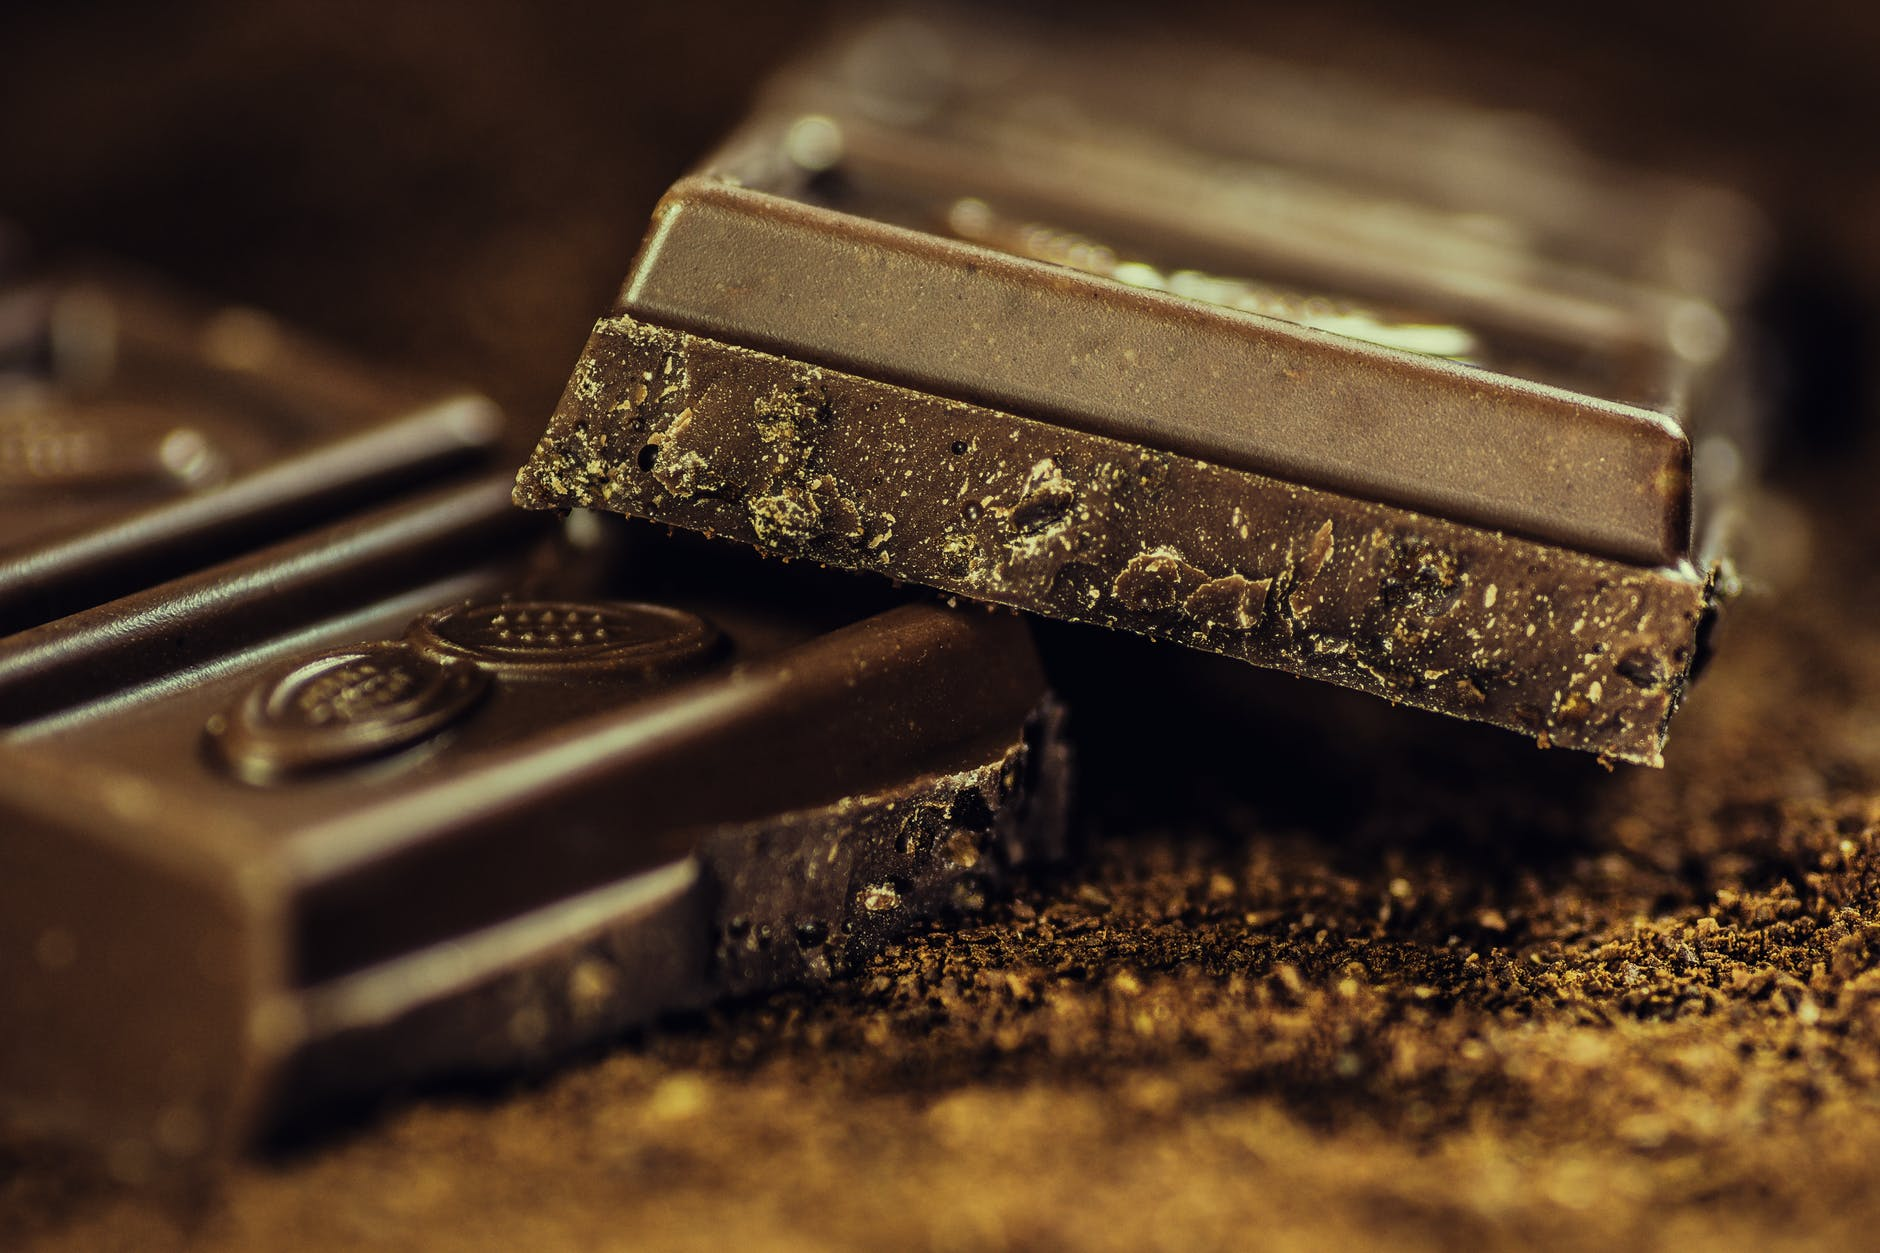 Antioxidant, vitamin rich dark chocolate | Source: Pexels